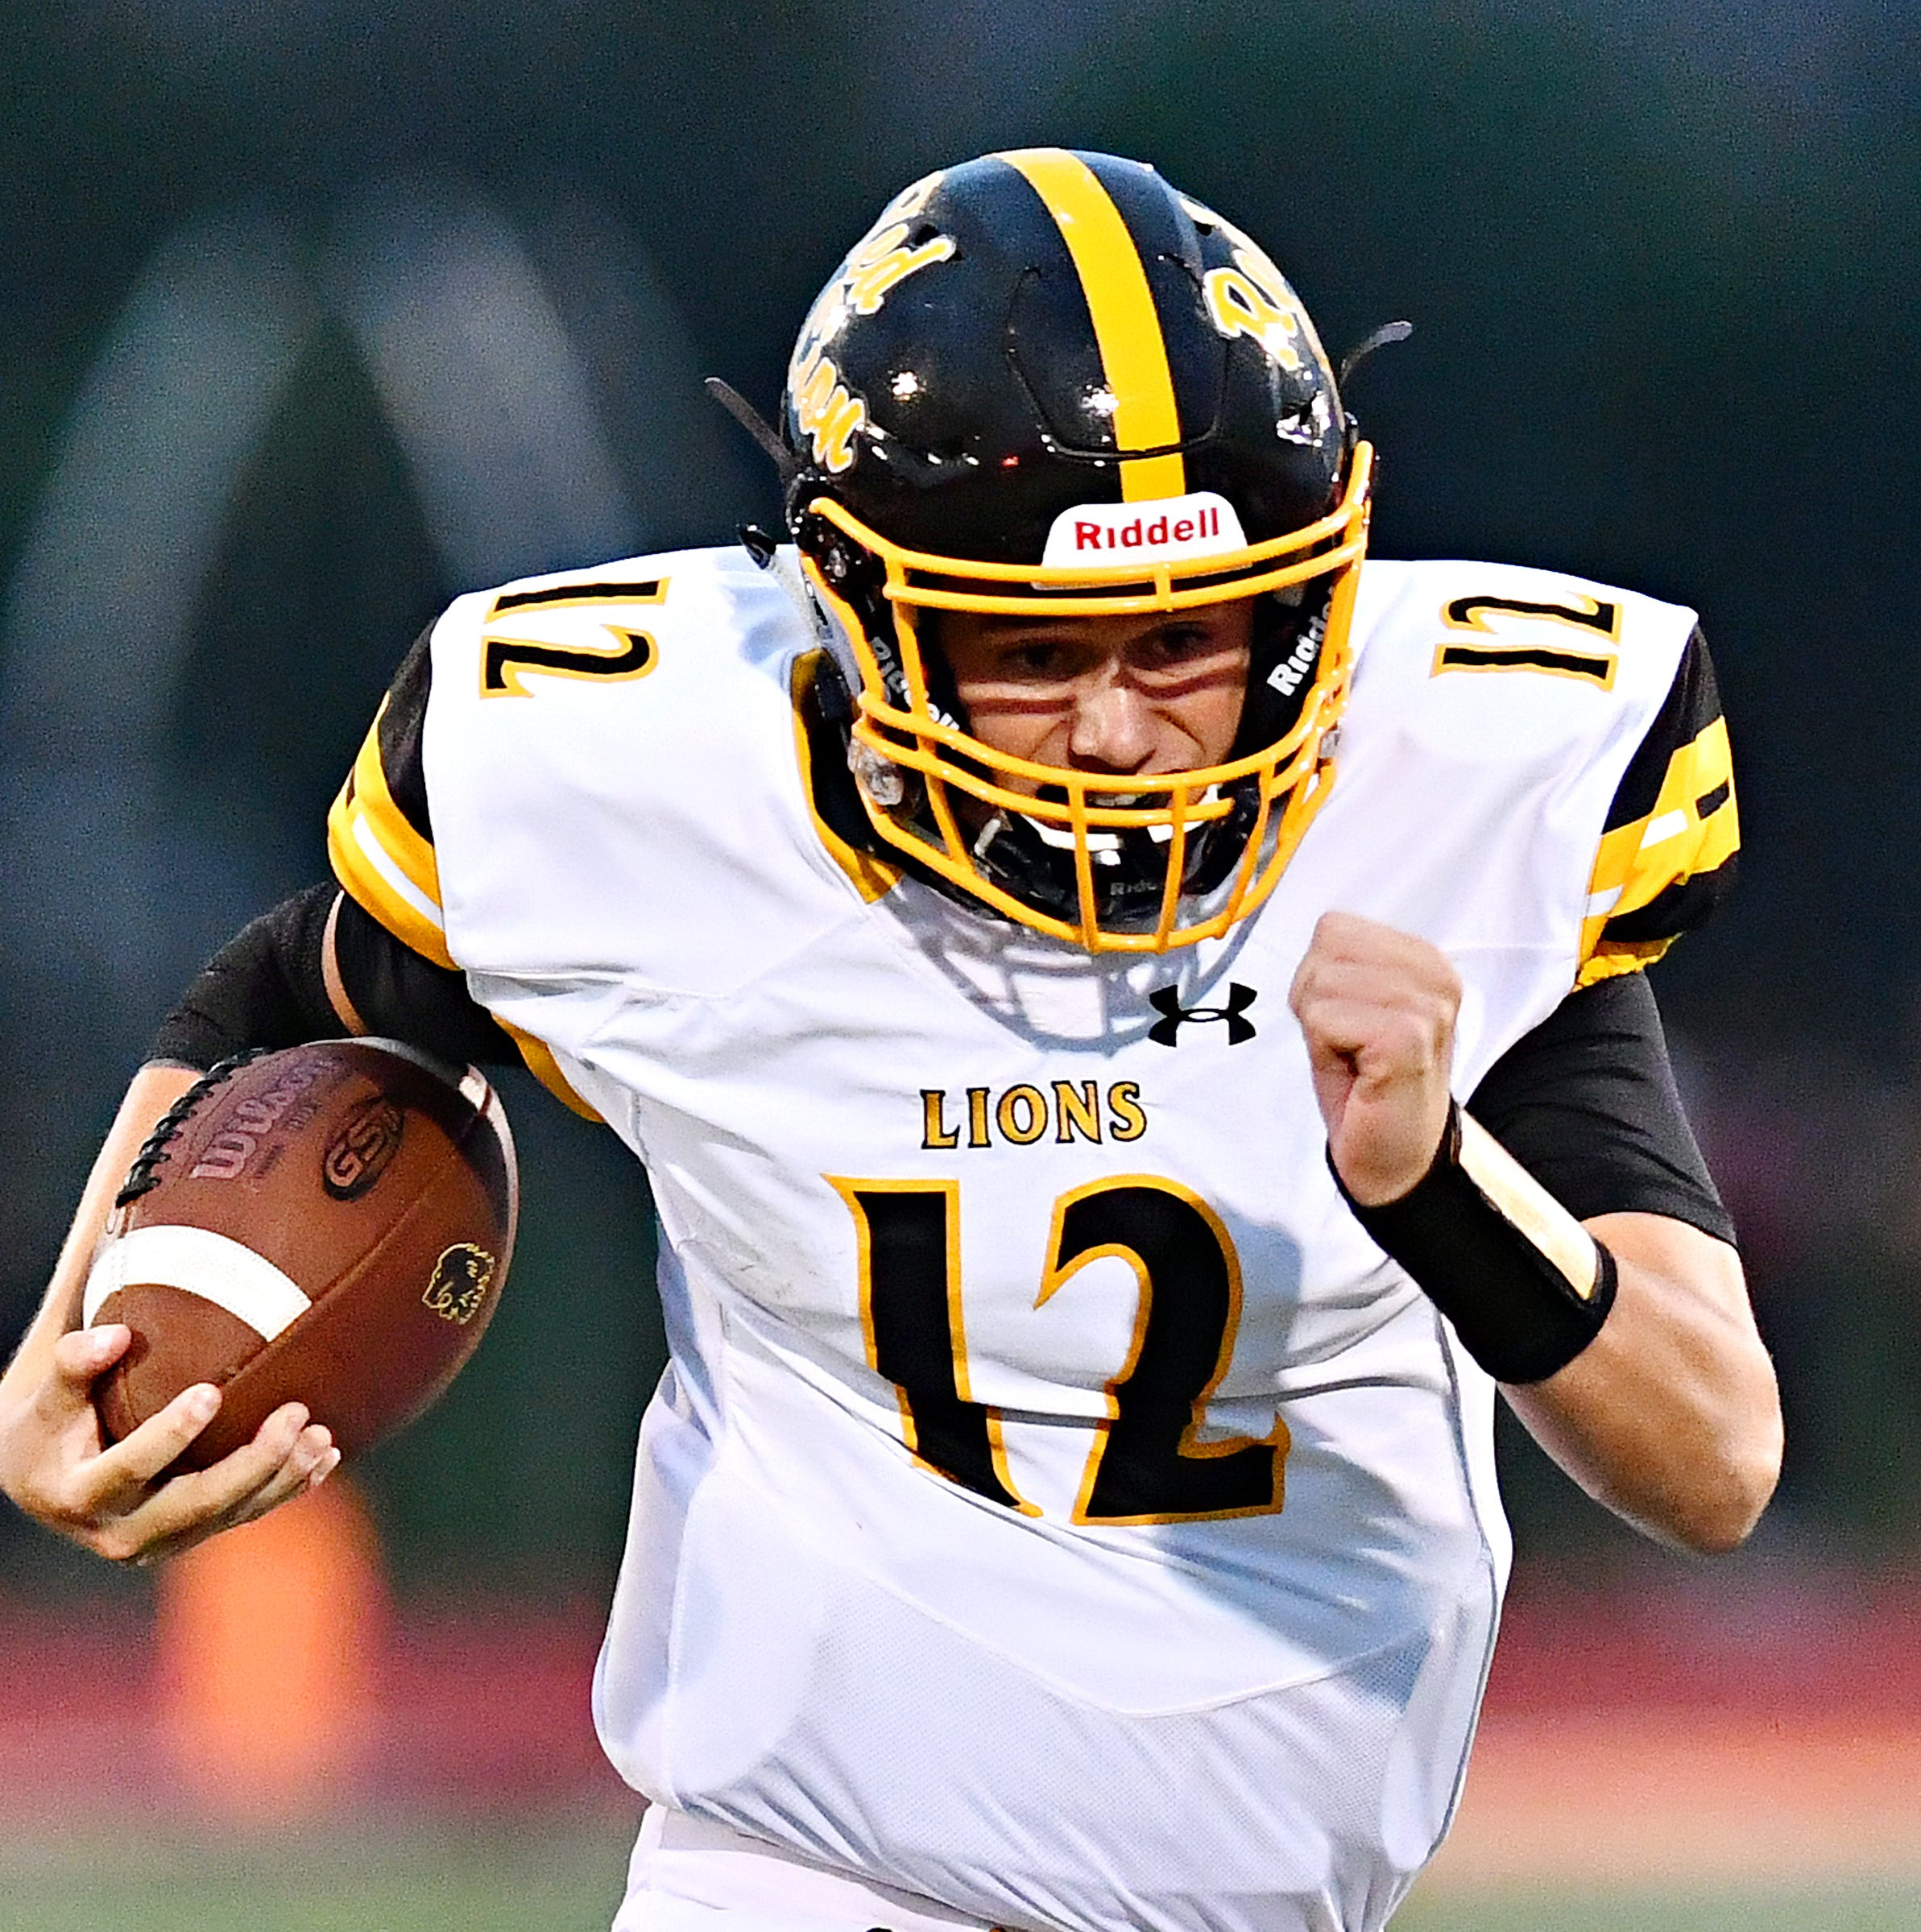 Red Lion offense perfect in blowout win over Division I foe Central York